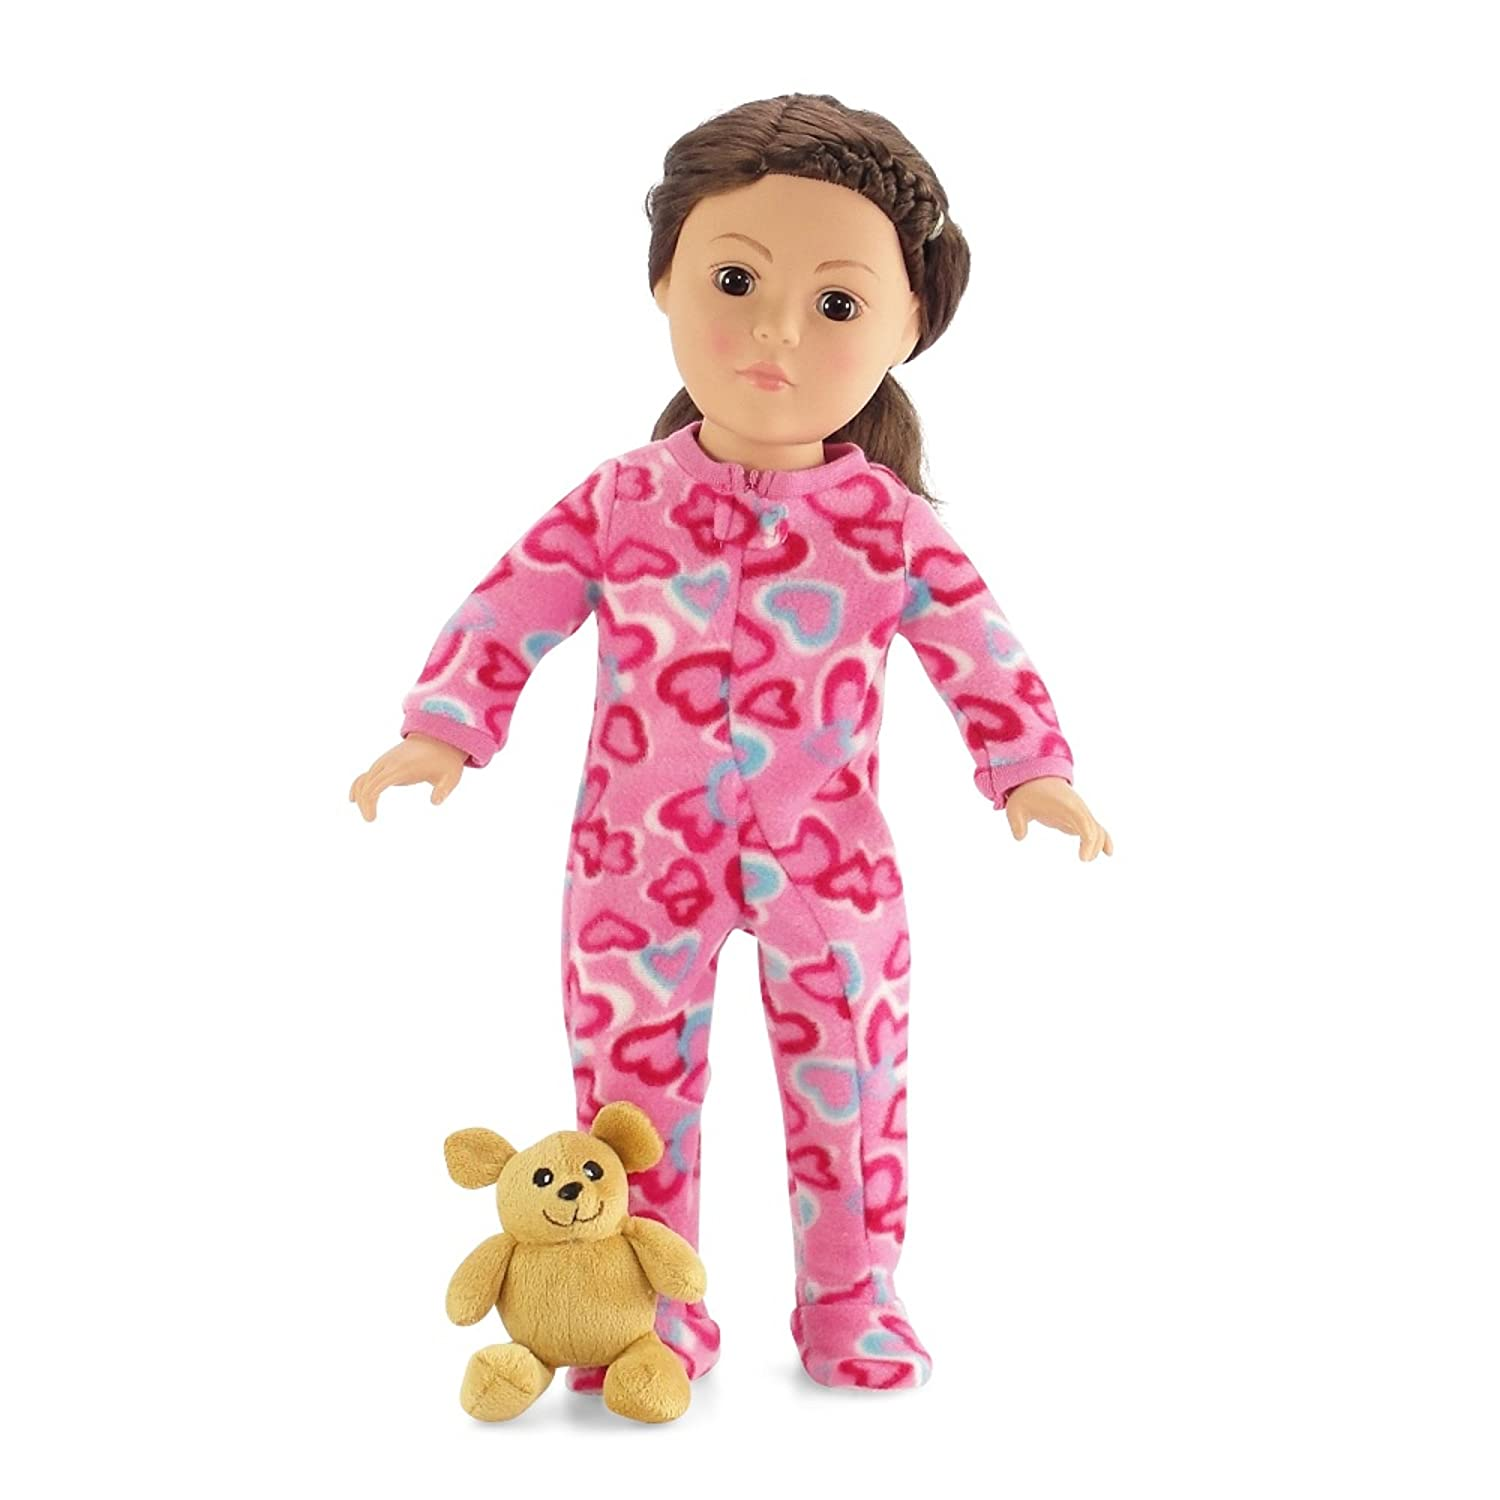 18 Inch Doll Pink Footed Heart Pajamas with Teddy Bear   Clothes Fit American Girl Dolls   Onesie Style   Gift Boxed by Emily Rose Doll Clothes